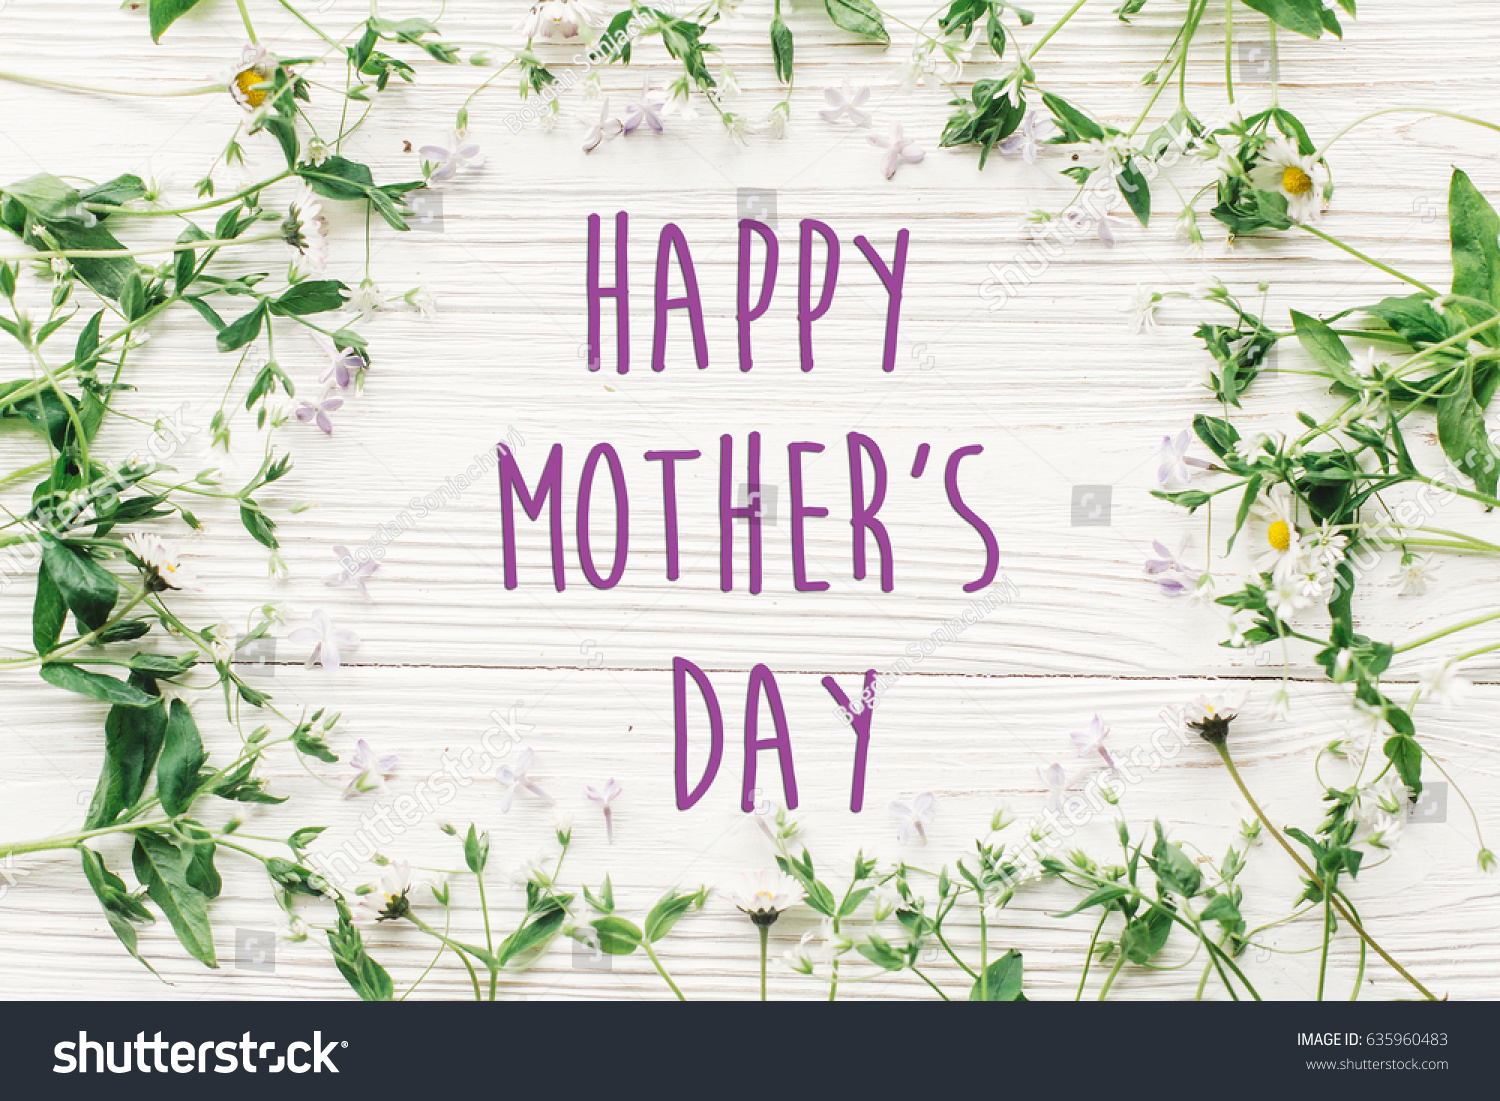 Happy mothers day text sign greeting stock photo 635960483 happy mothers day text sign greeting card gentle pink lilac flowers and daisy frame kristyandbryce Choice Image